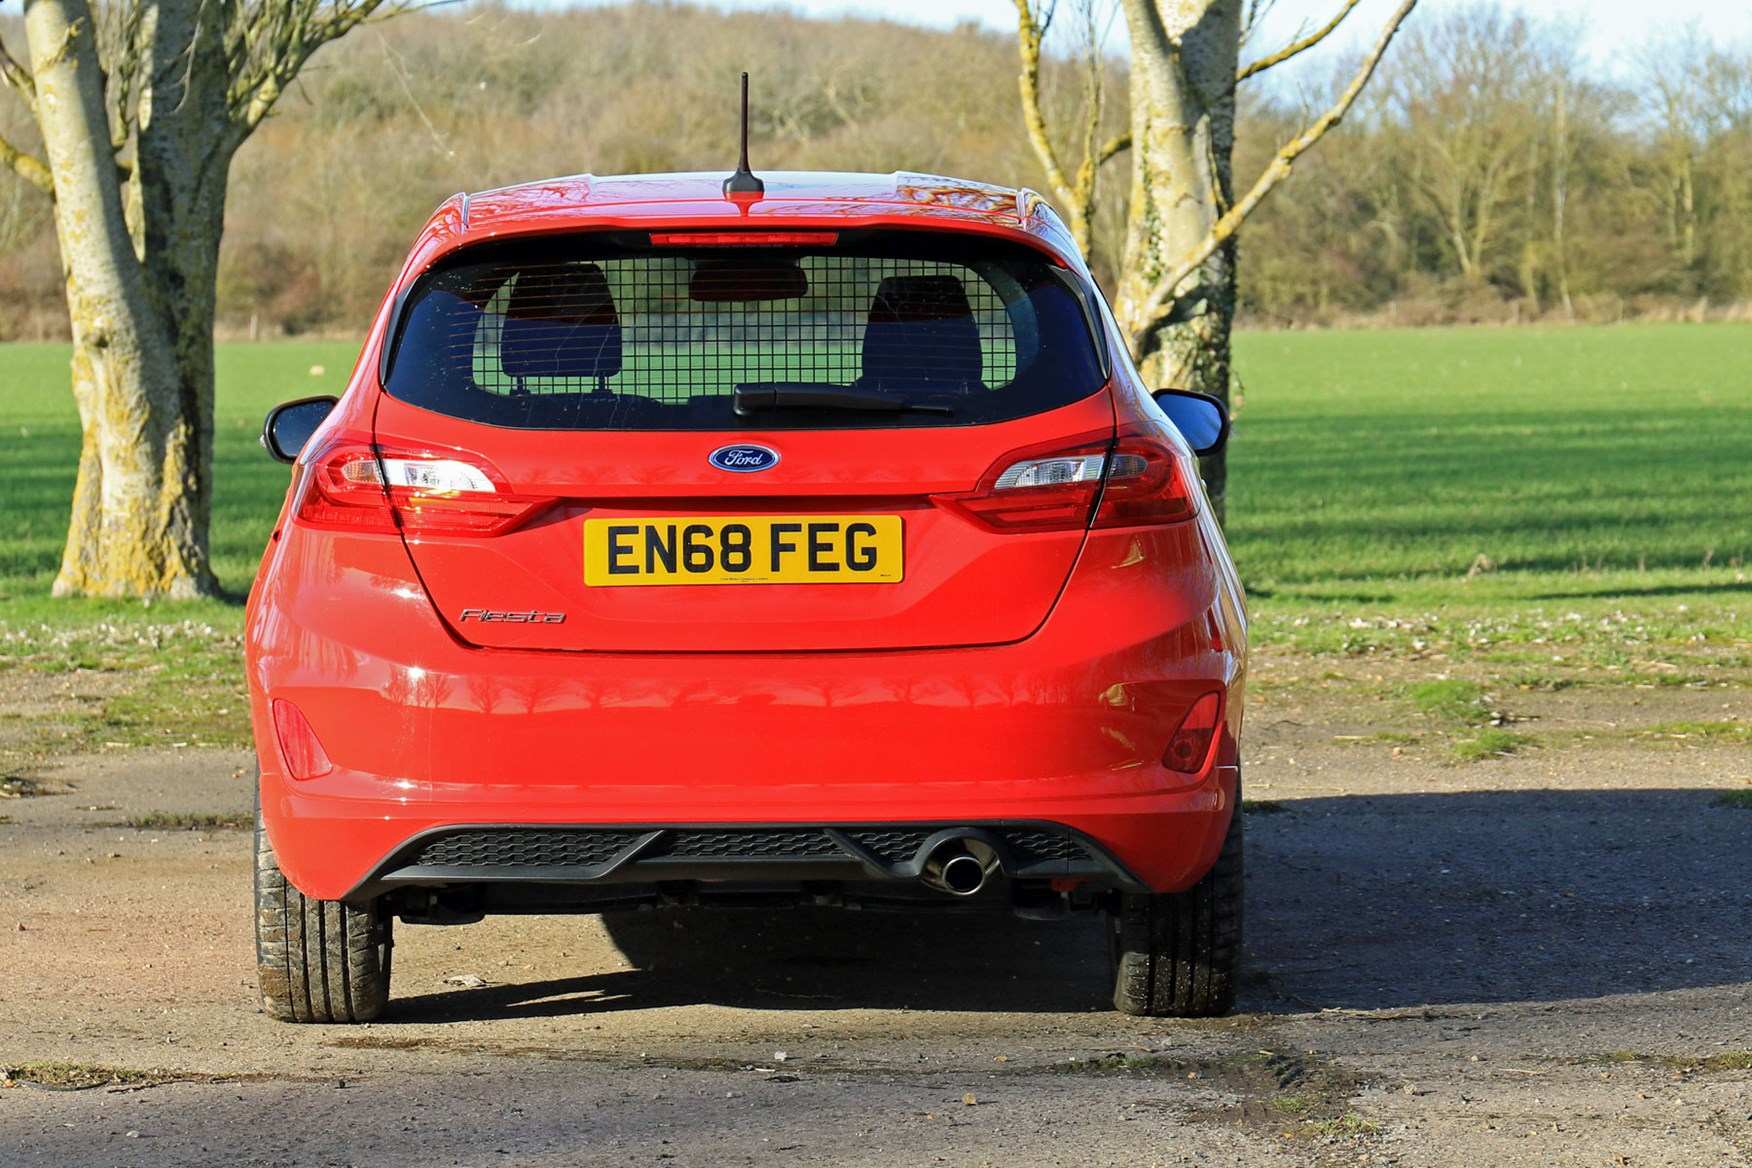 Ford Fiesta Sport Van review - rear view, dead-on, red